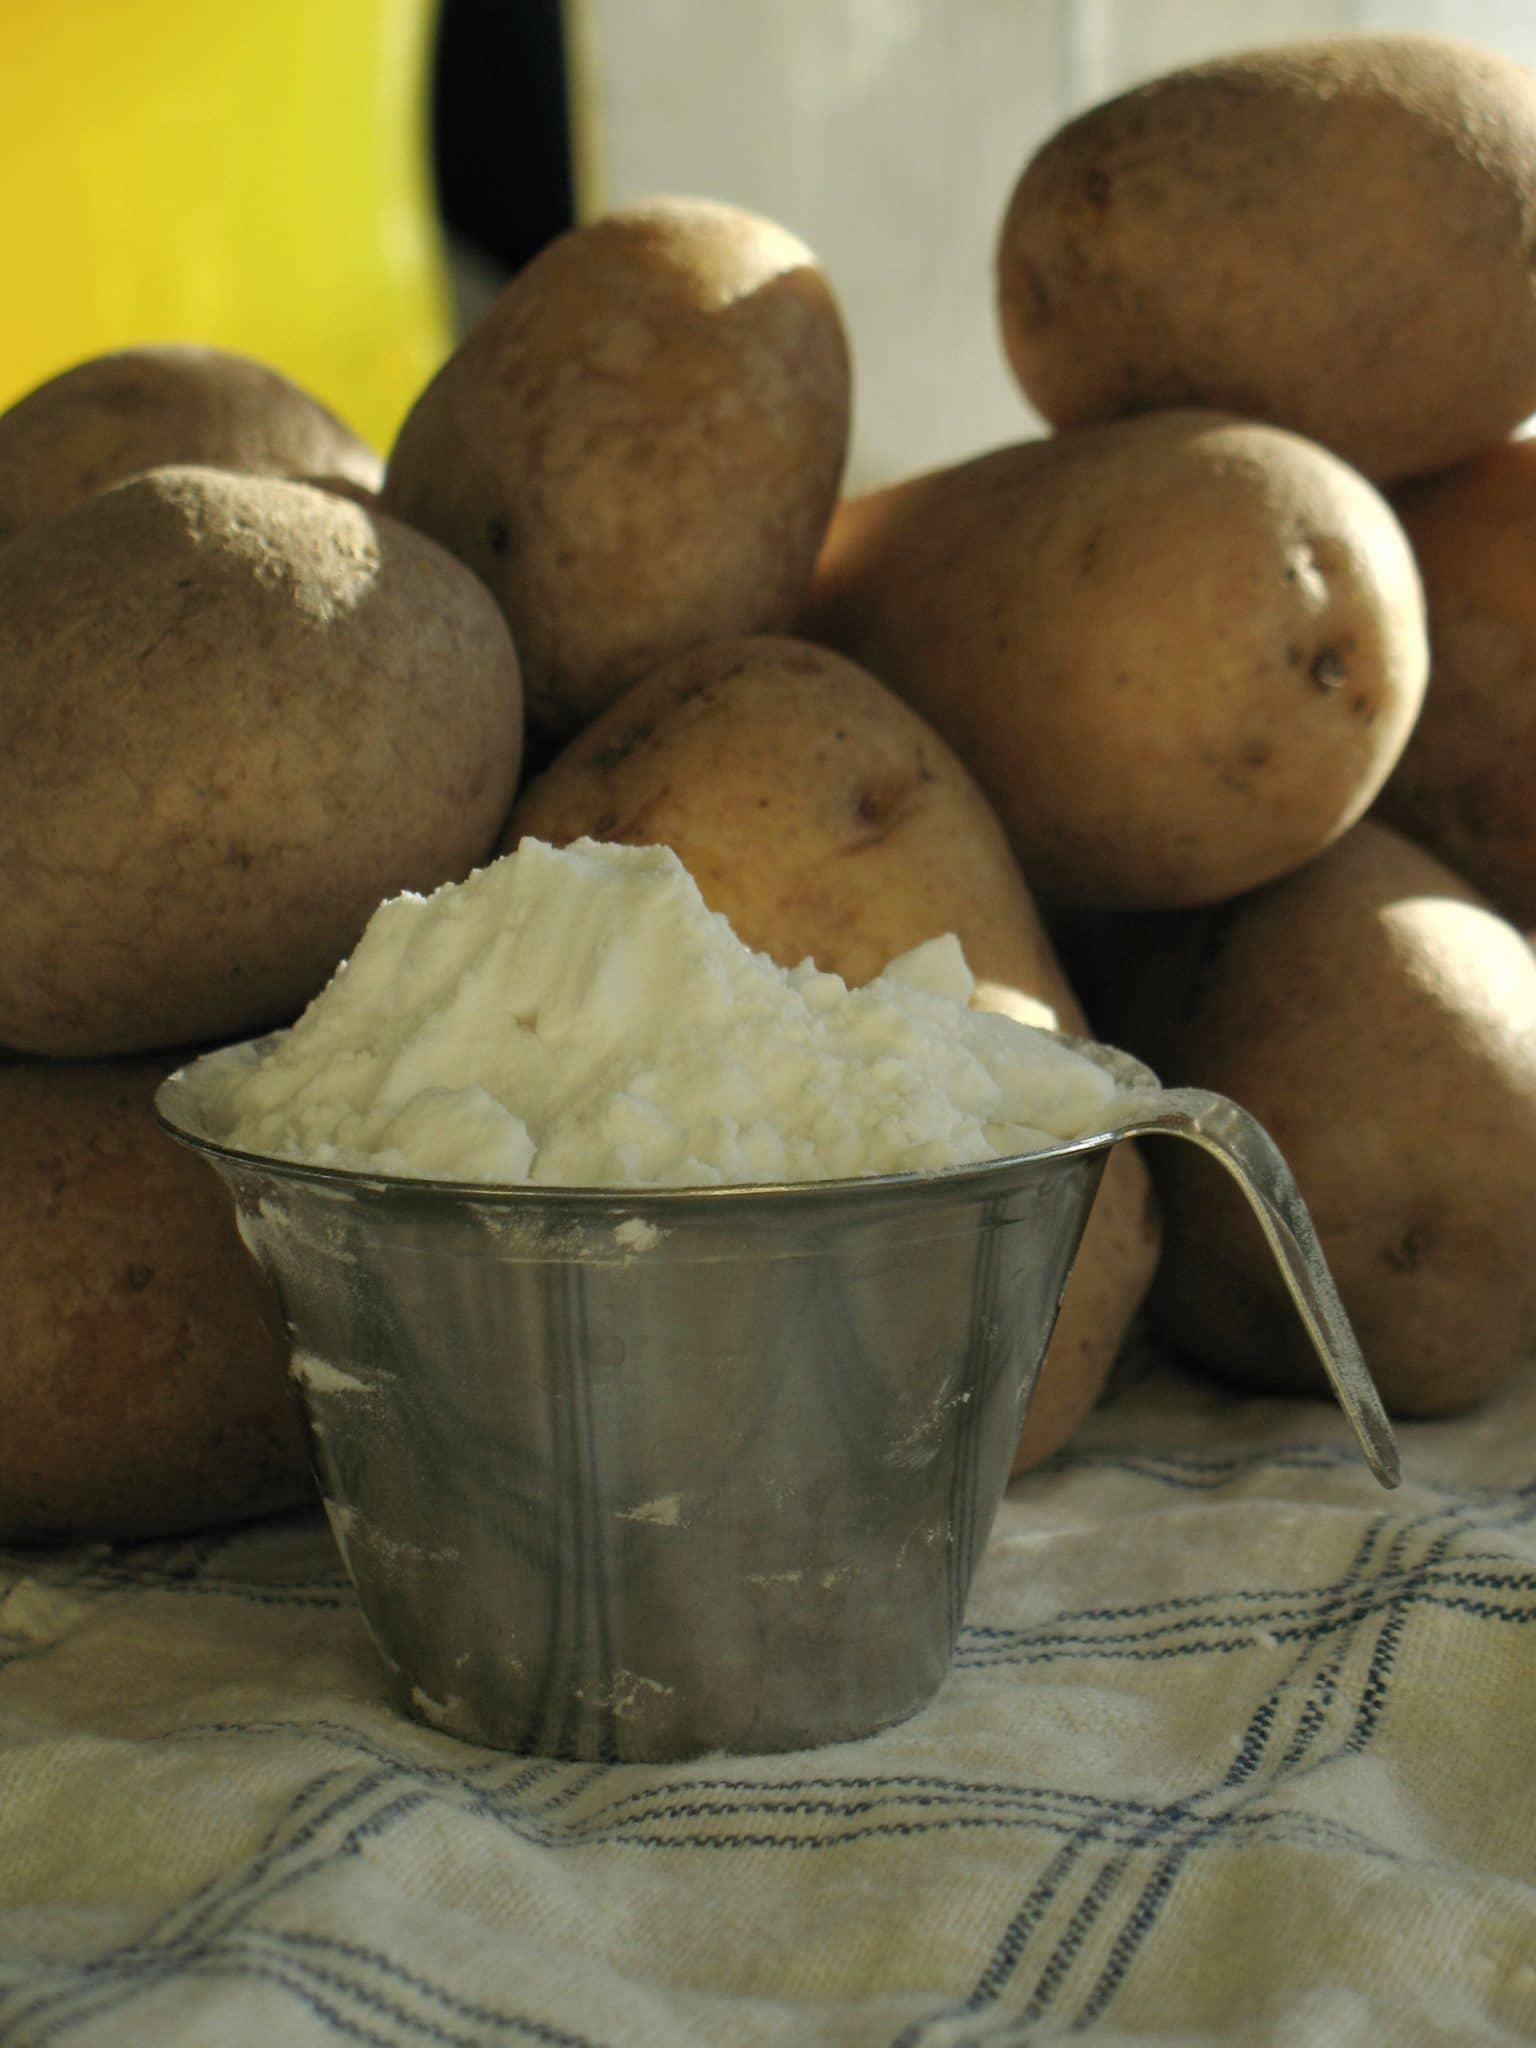 how to make potato starch, potato starch flour